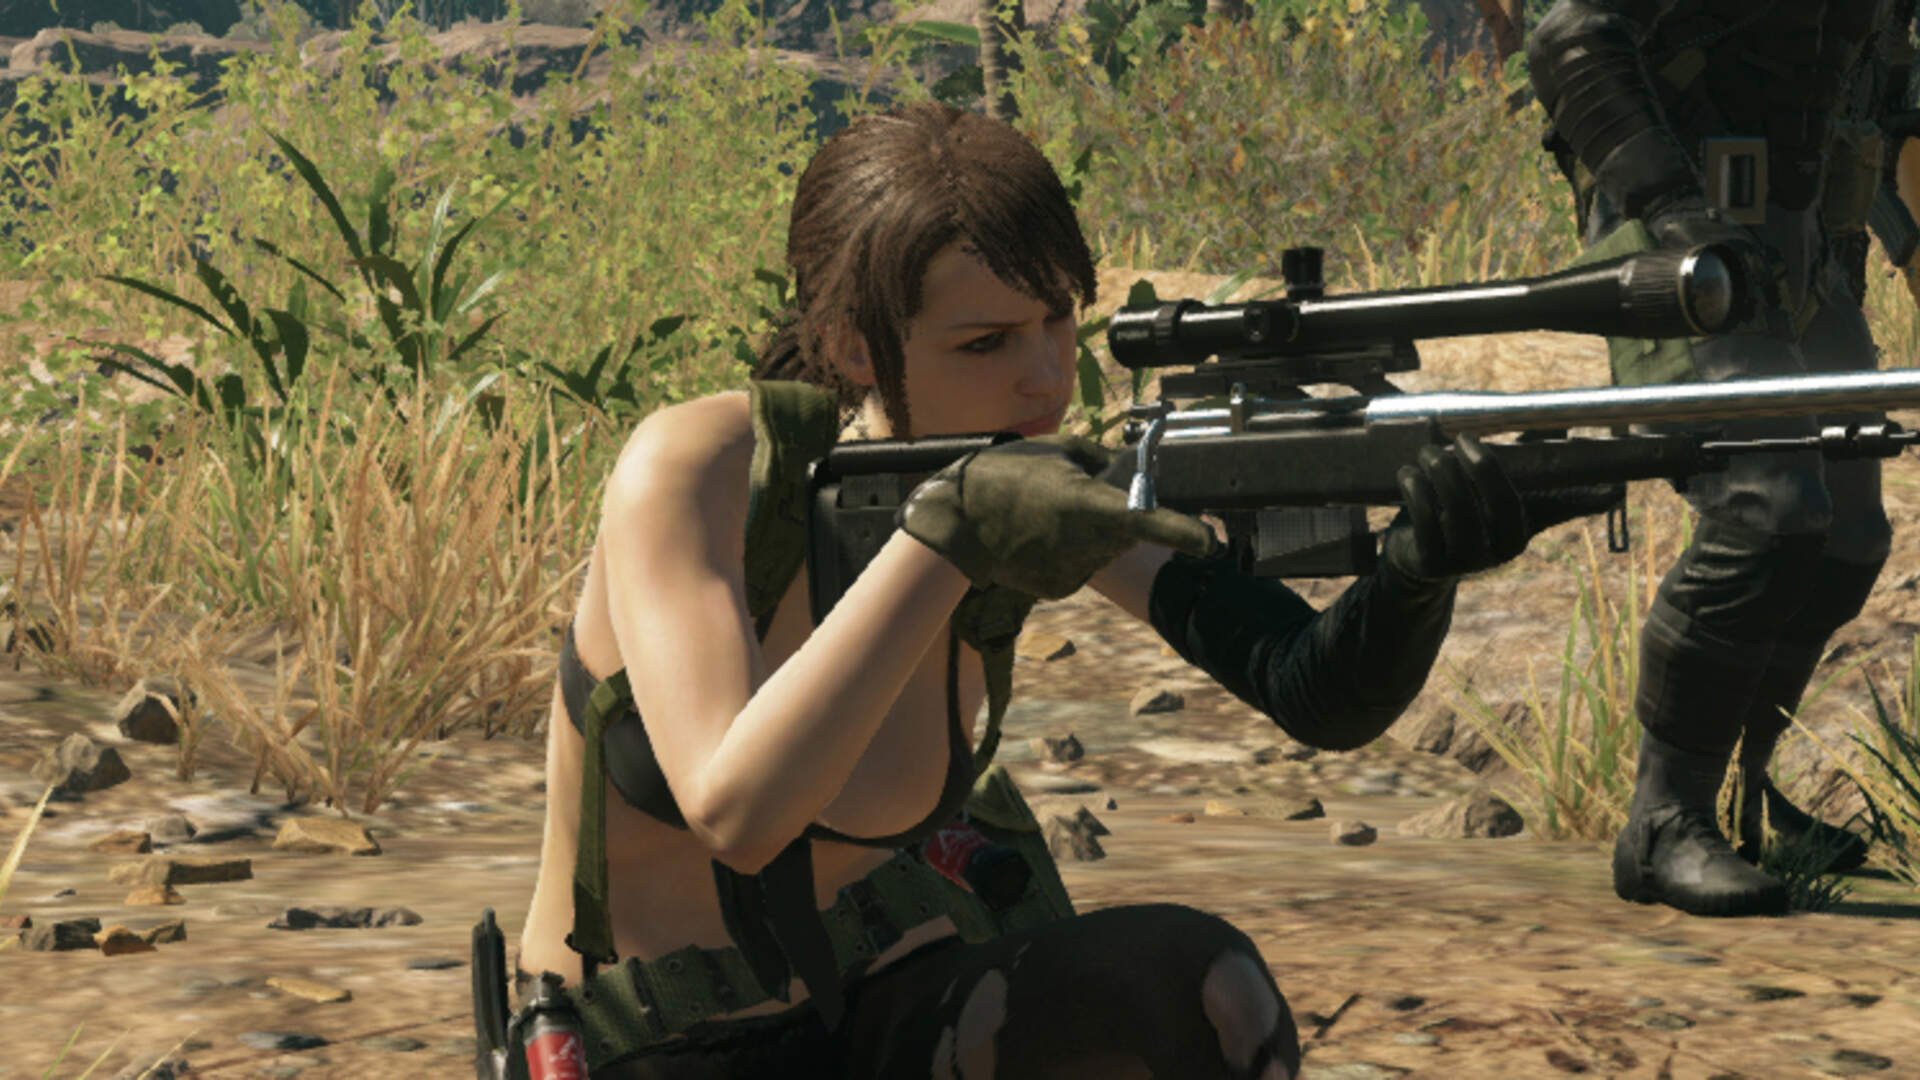 Metal Gear Solid 5 - Phantom Limbs Mission 1 Guide - Infiltrate the Village and Rescue the Target